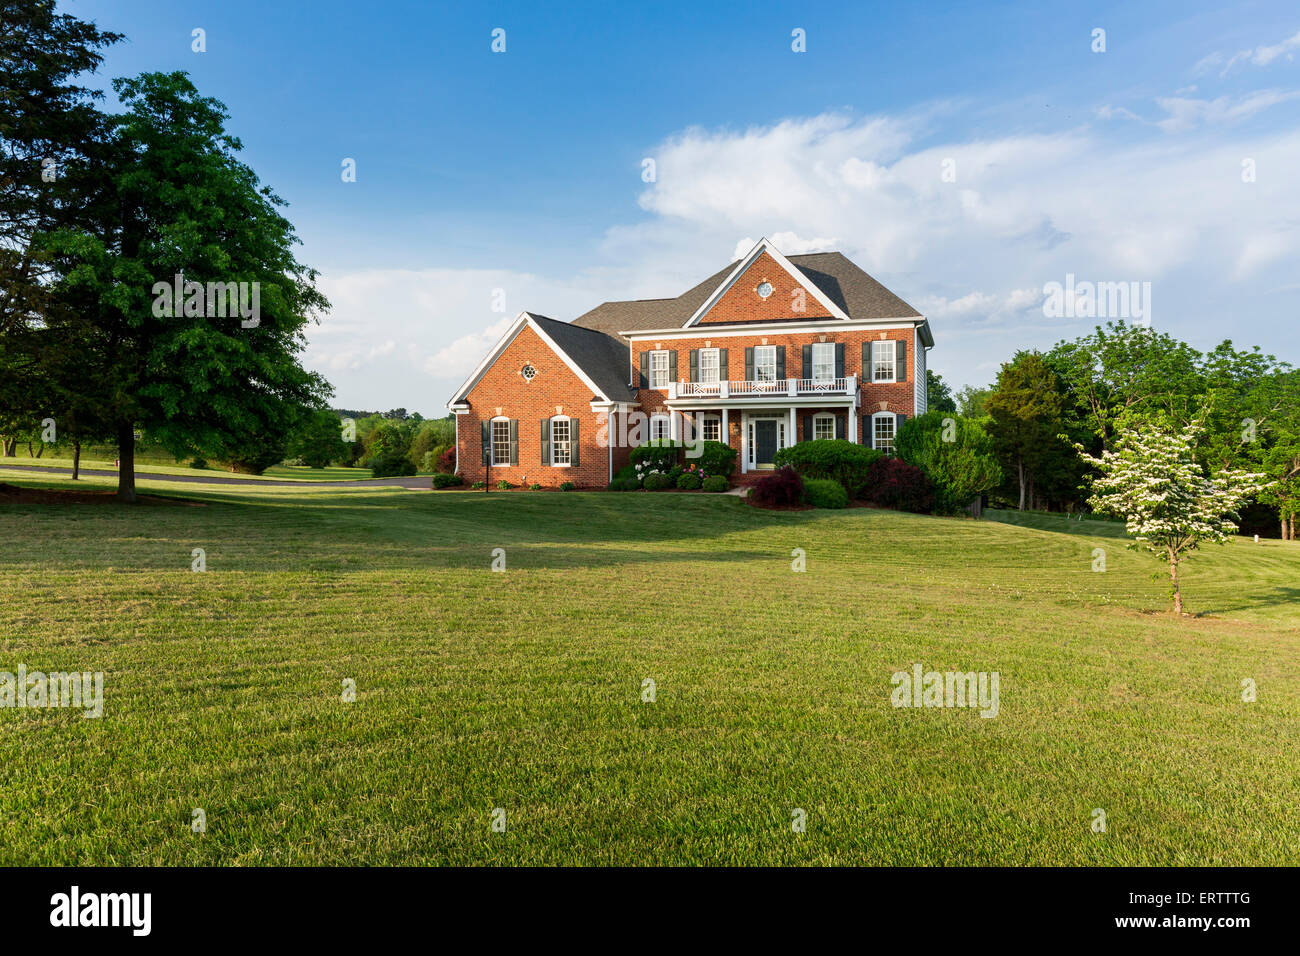 Detached house USA - Front of large single American family home with large garden lawn on a warm sunny summer day Stock Photo